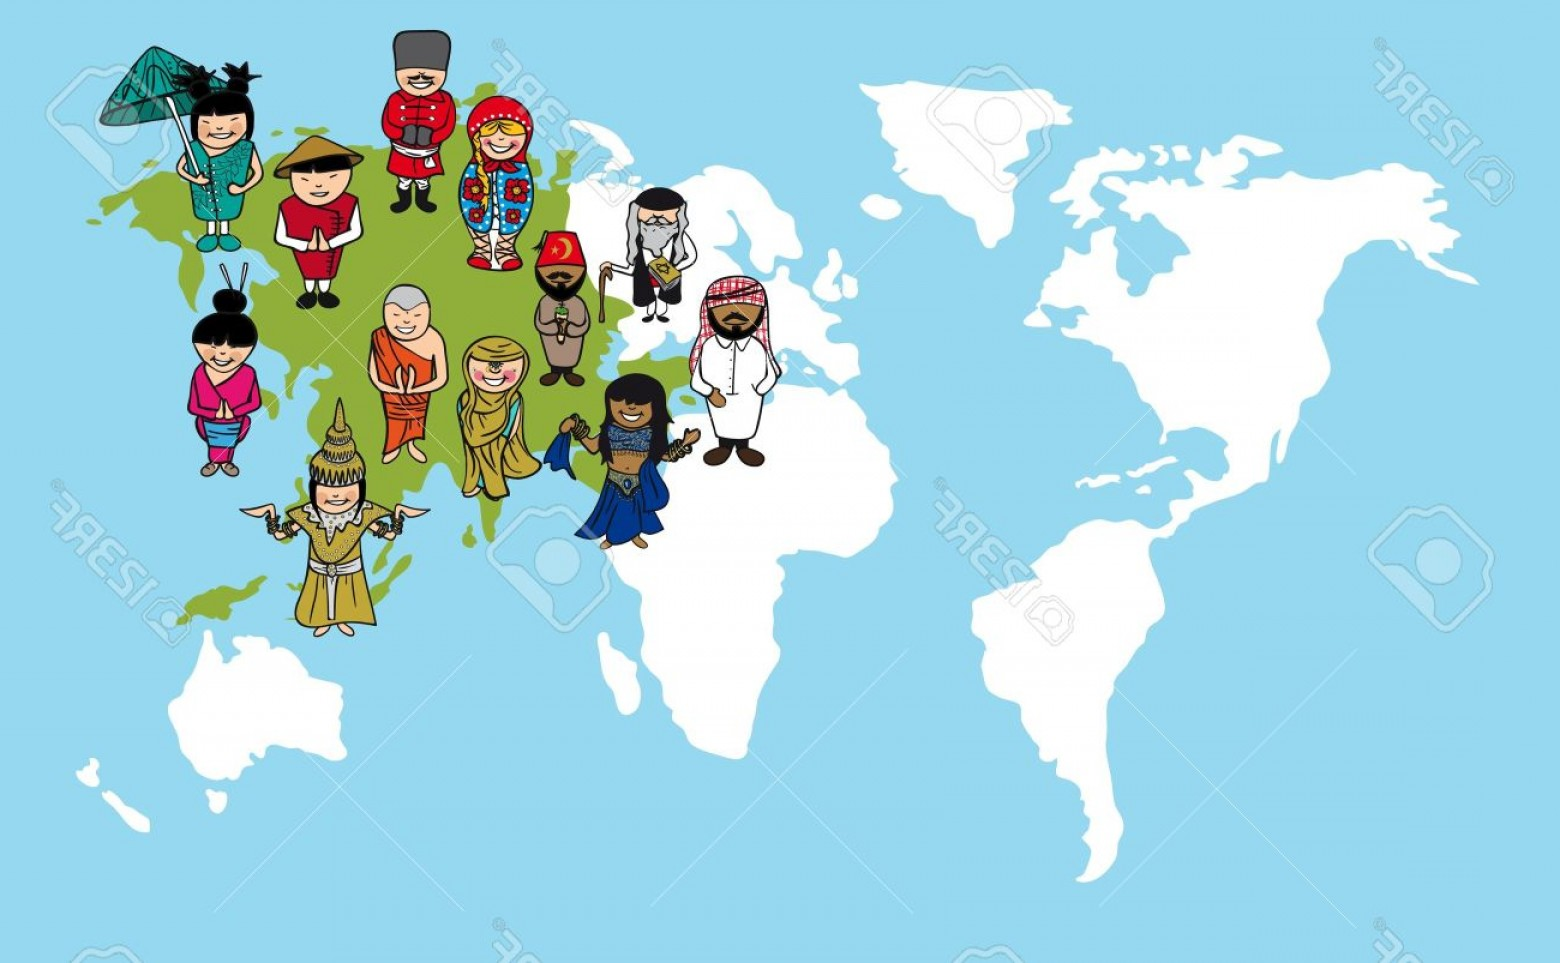 Asia Continent Map Vector: Photodiversity Concept World Map Cartoon People Over Asia Continent